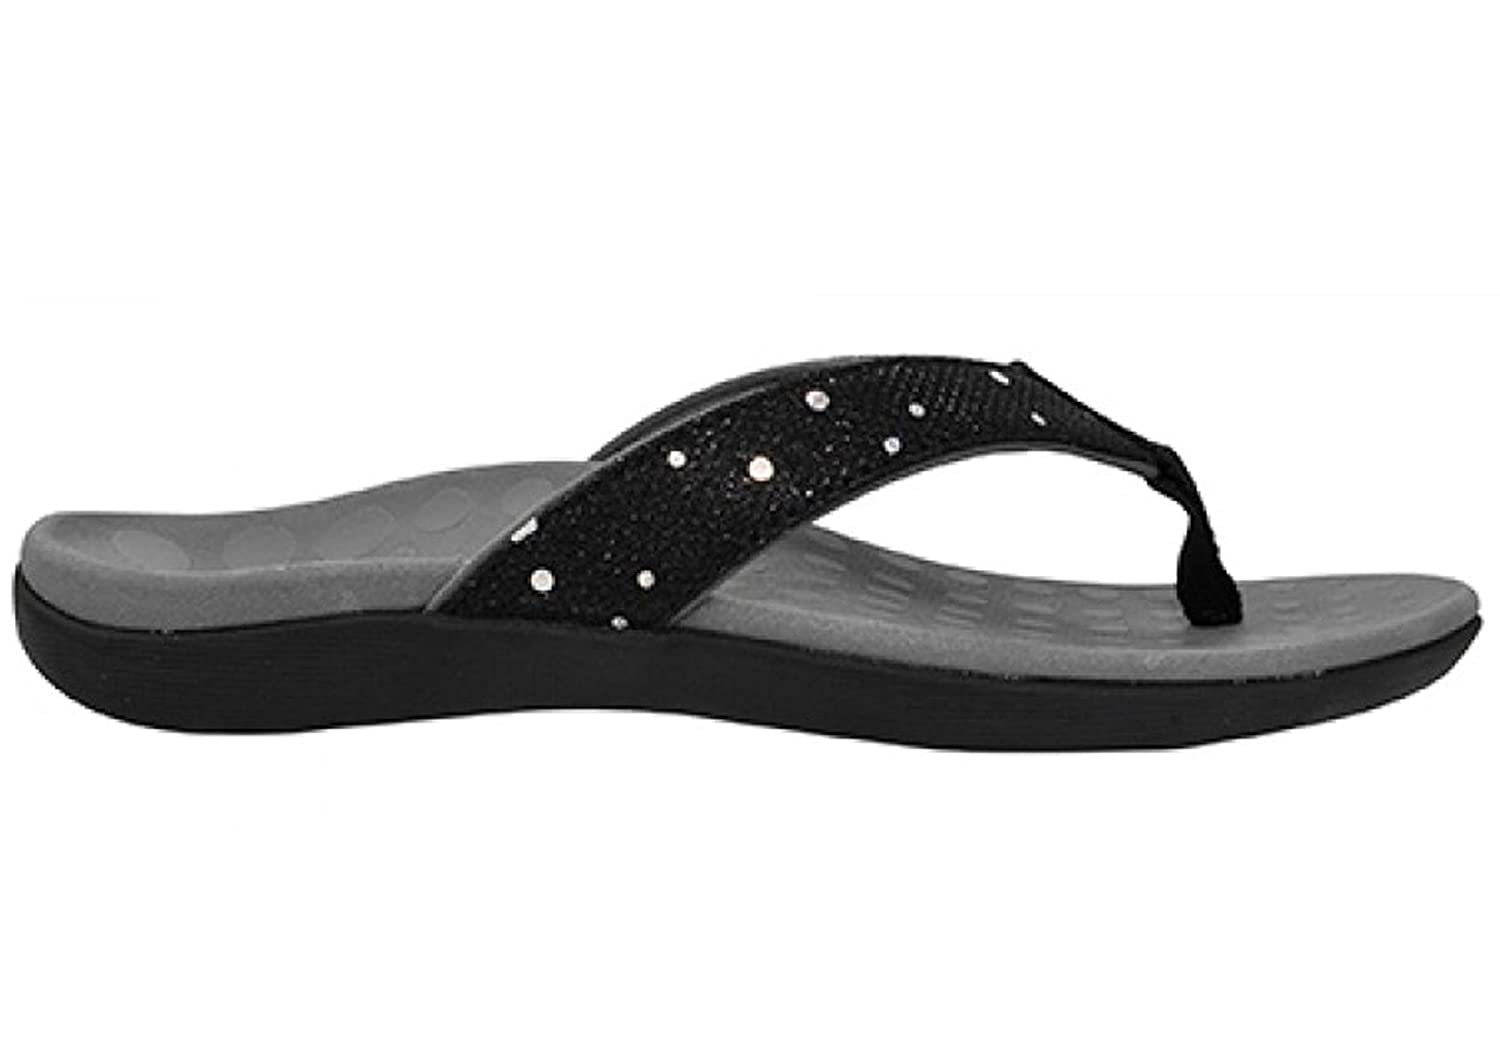 7e5f22986 Scholl Orthaheel Sonoma II Womens Supportive Comfortable Thongs   Amazon.com.au  Fashion